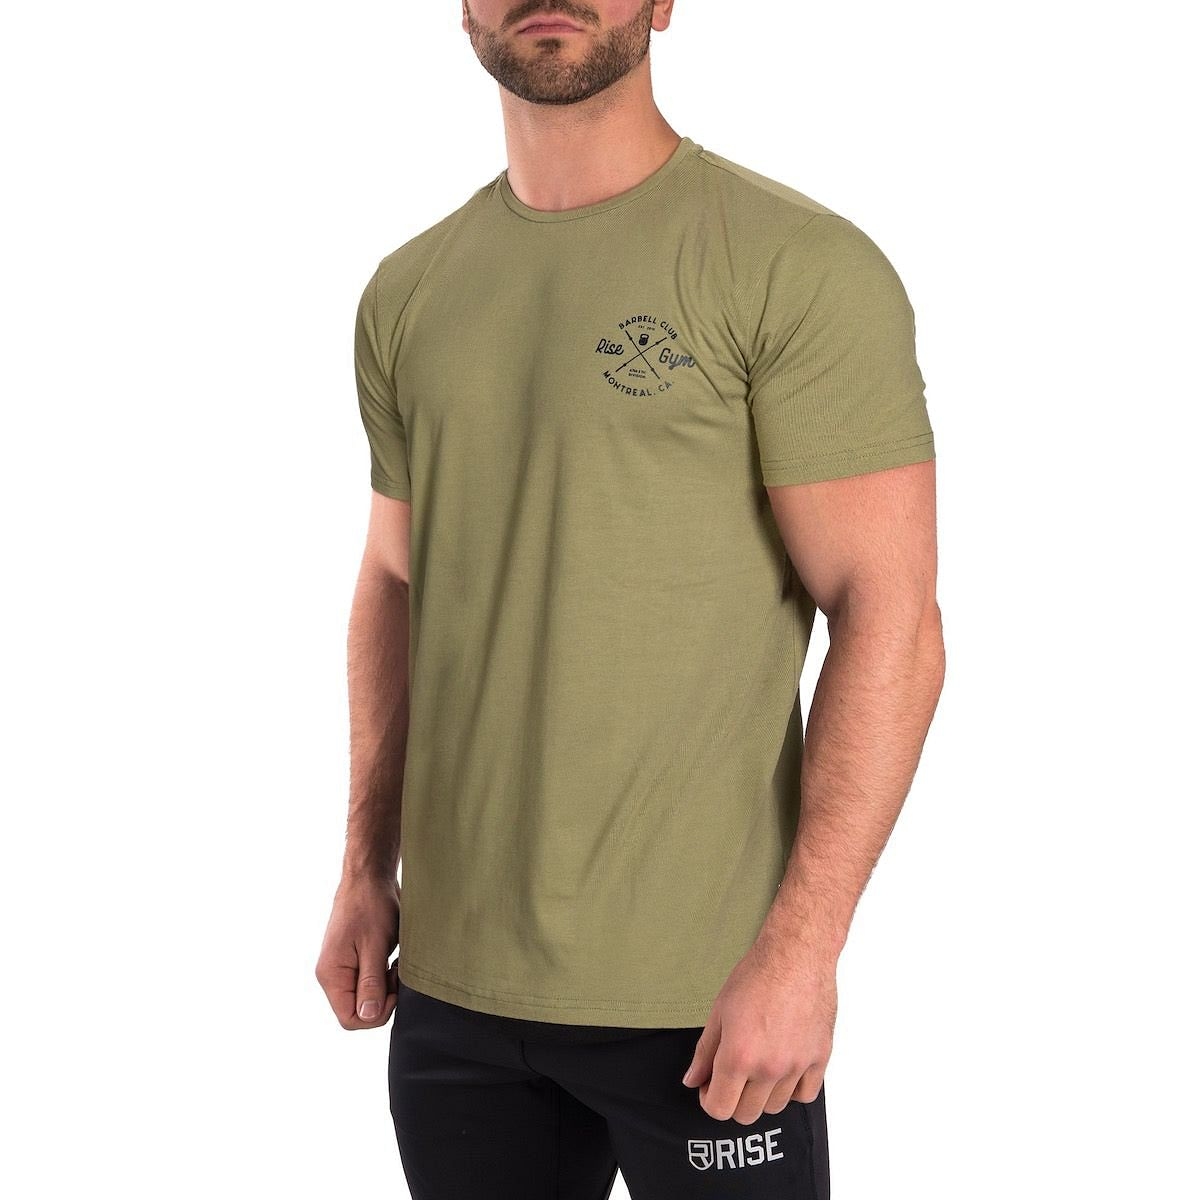 Barbell Club Shirt - Army Green